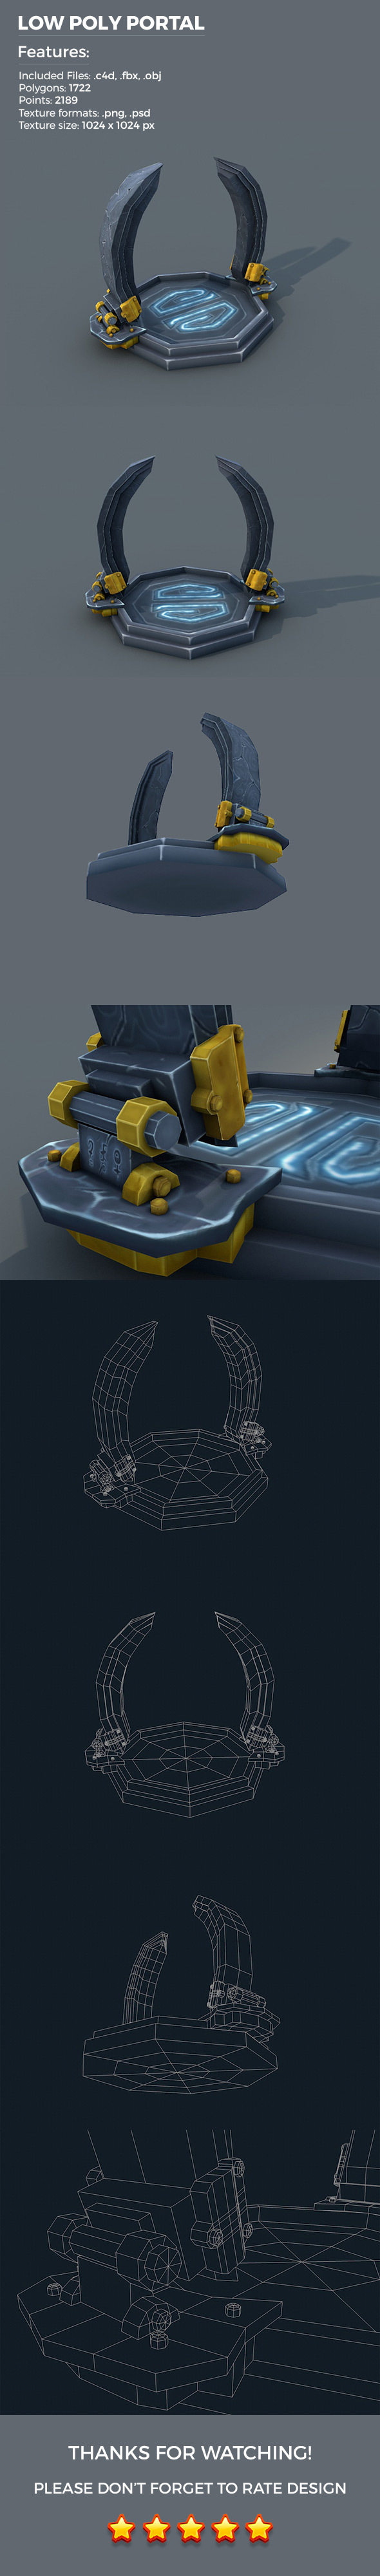 Low Poly Portal - 3DOcean Item for Sale